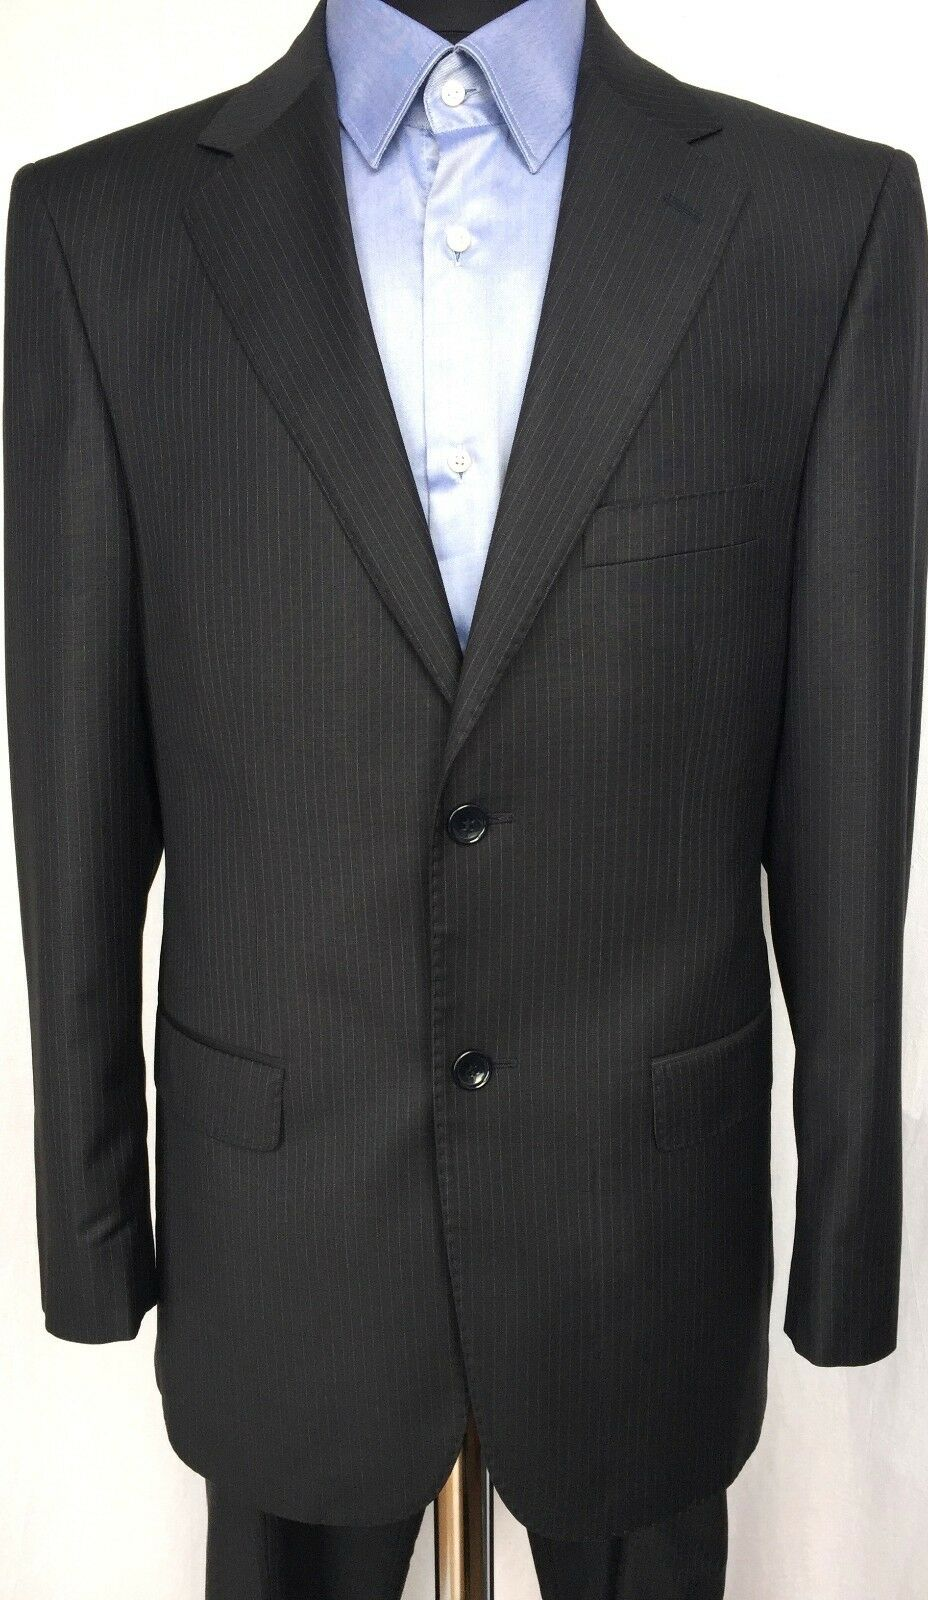 PAULO CONTE Milano Classic 2 Piece Wool Suit Button Striped Navy bluee 46 W31 L31